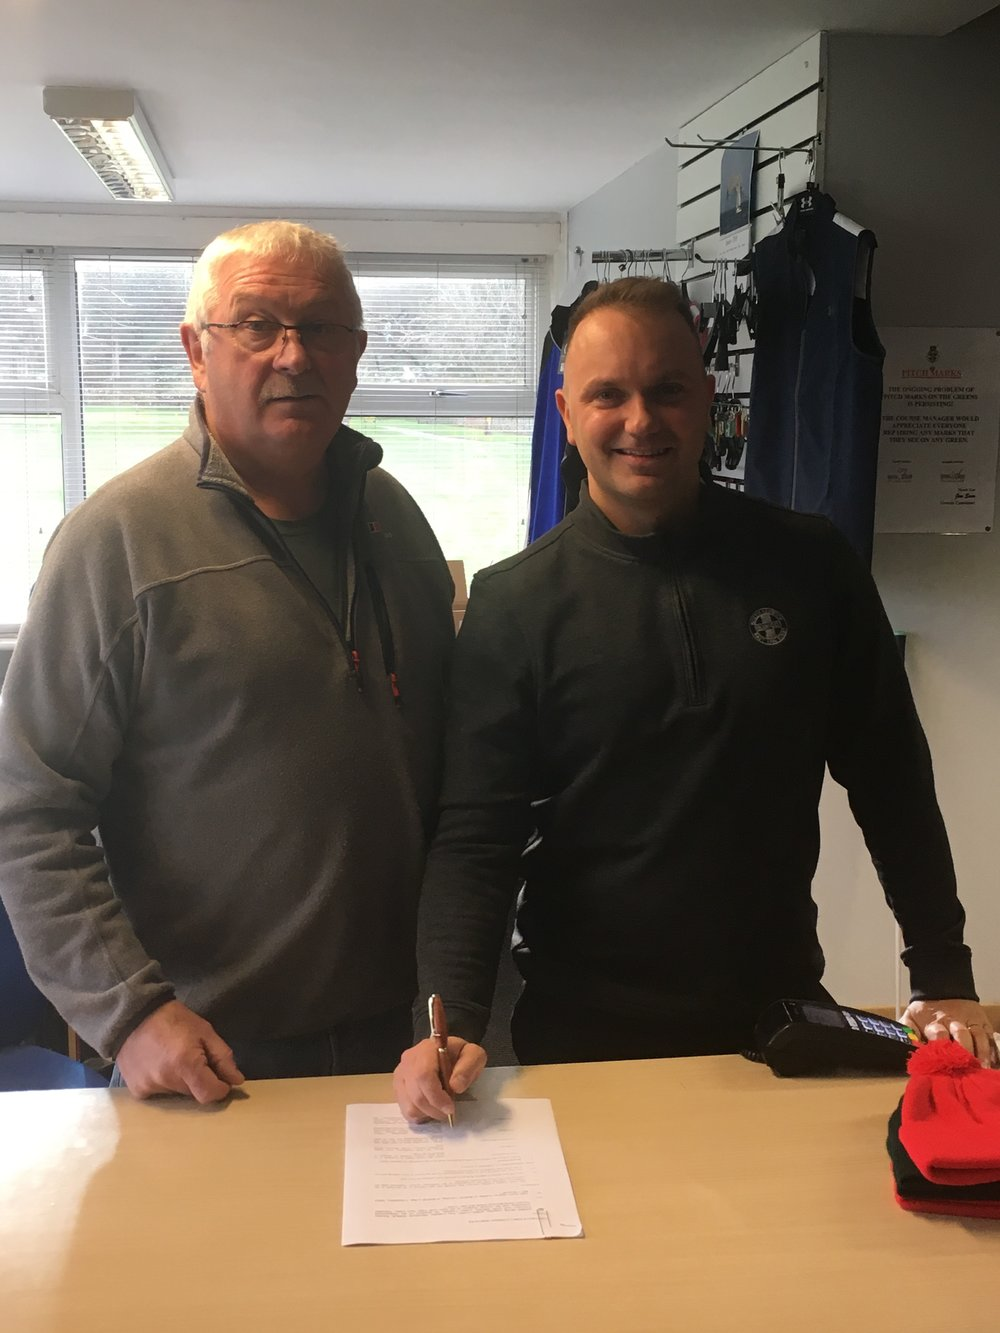 Clint signs his catering contract in the presence of Club Captain Jim Sear. We would like to take this opportunity to wish Clint a successful future catering at The Glen, East Links and ask members to support your new caterer.